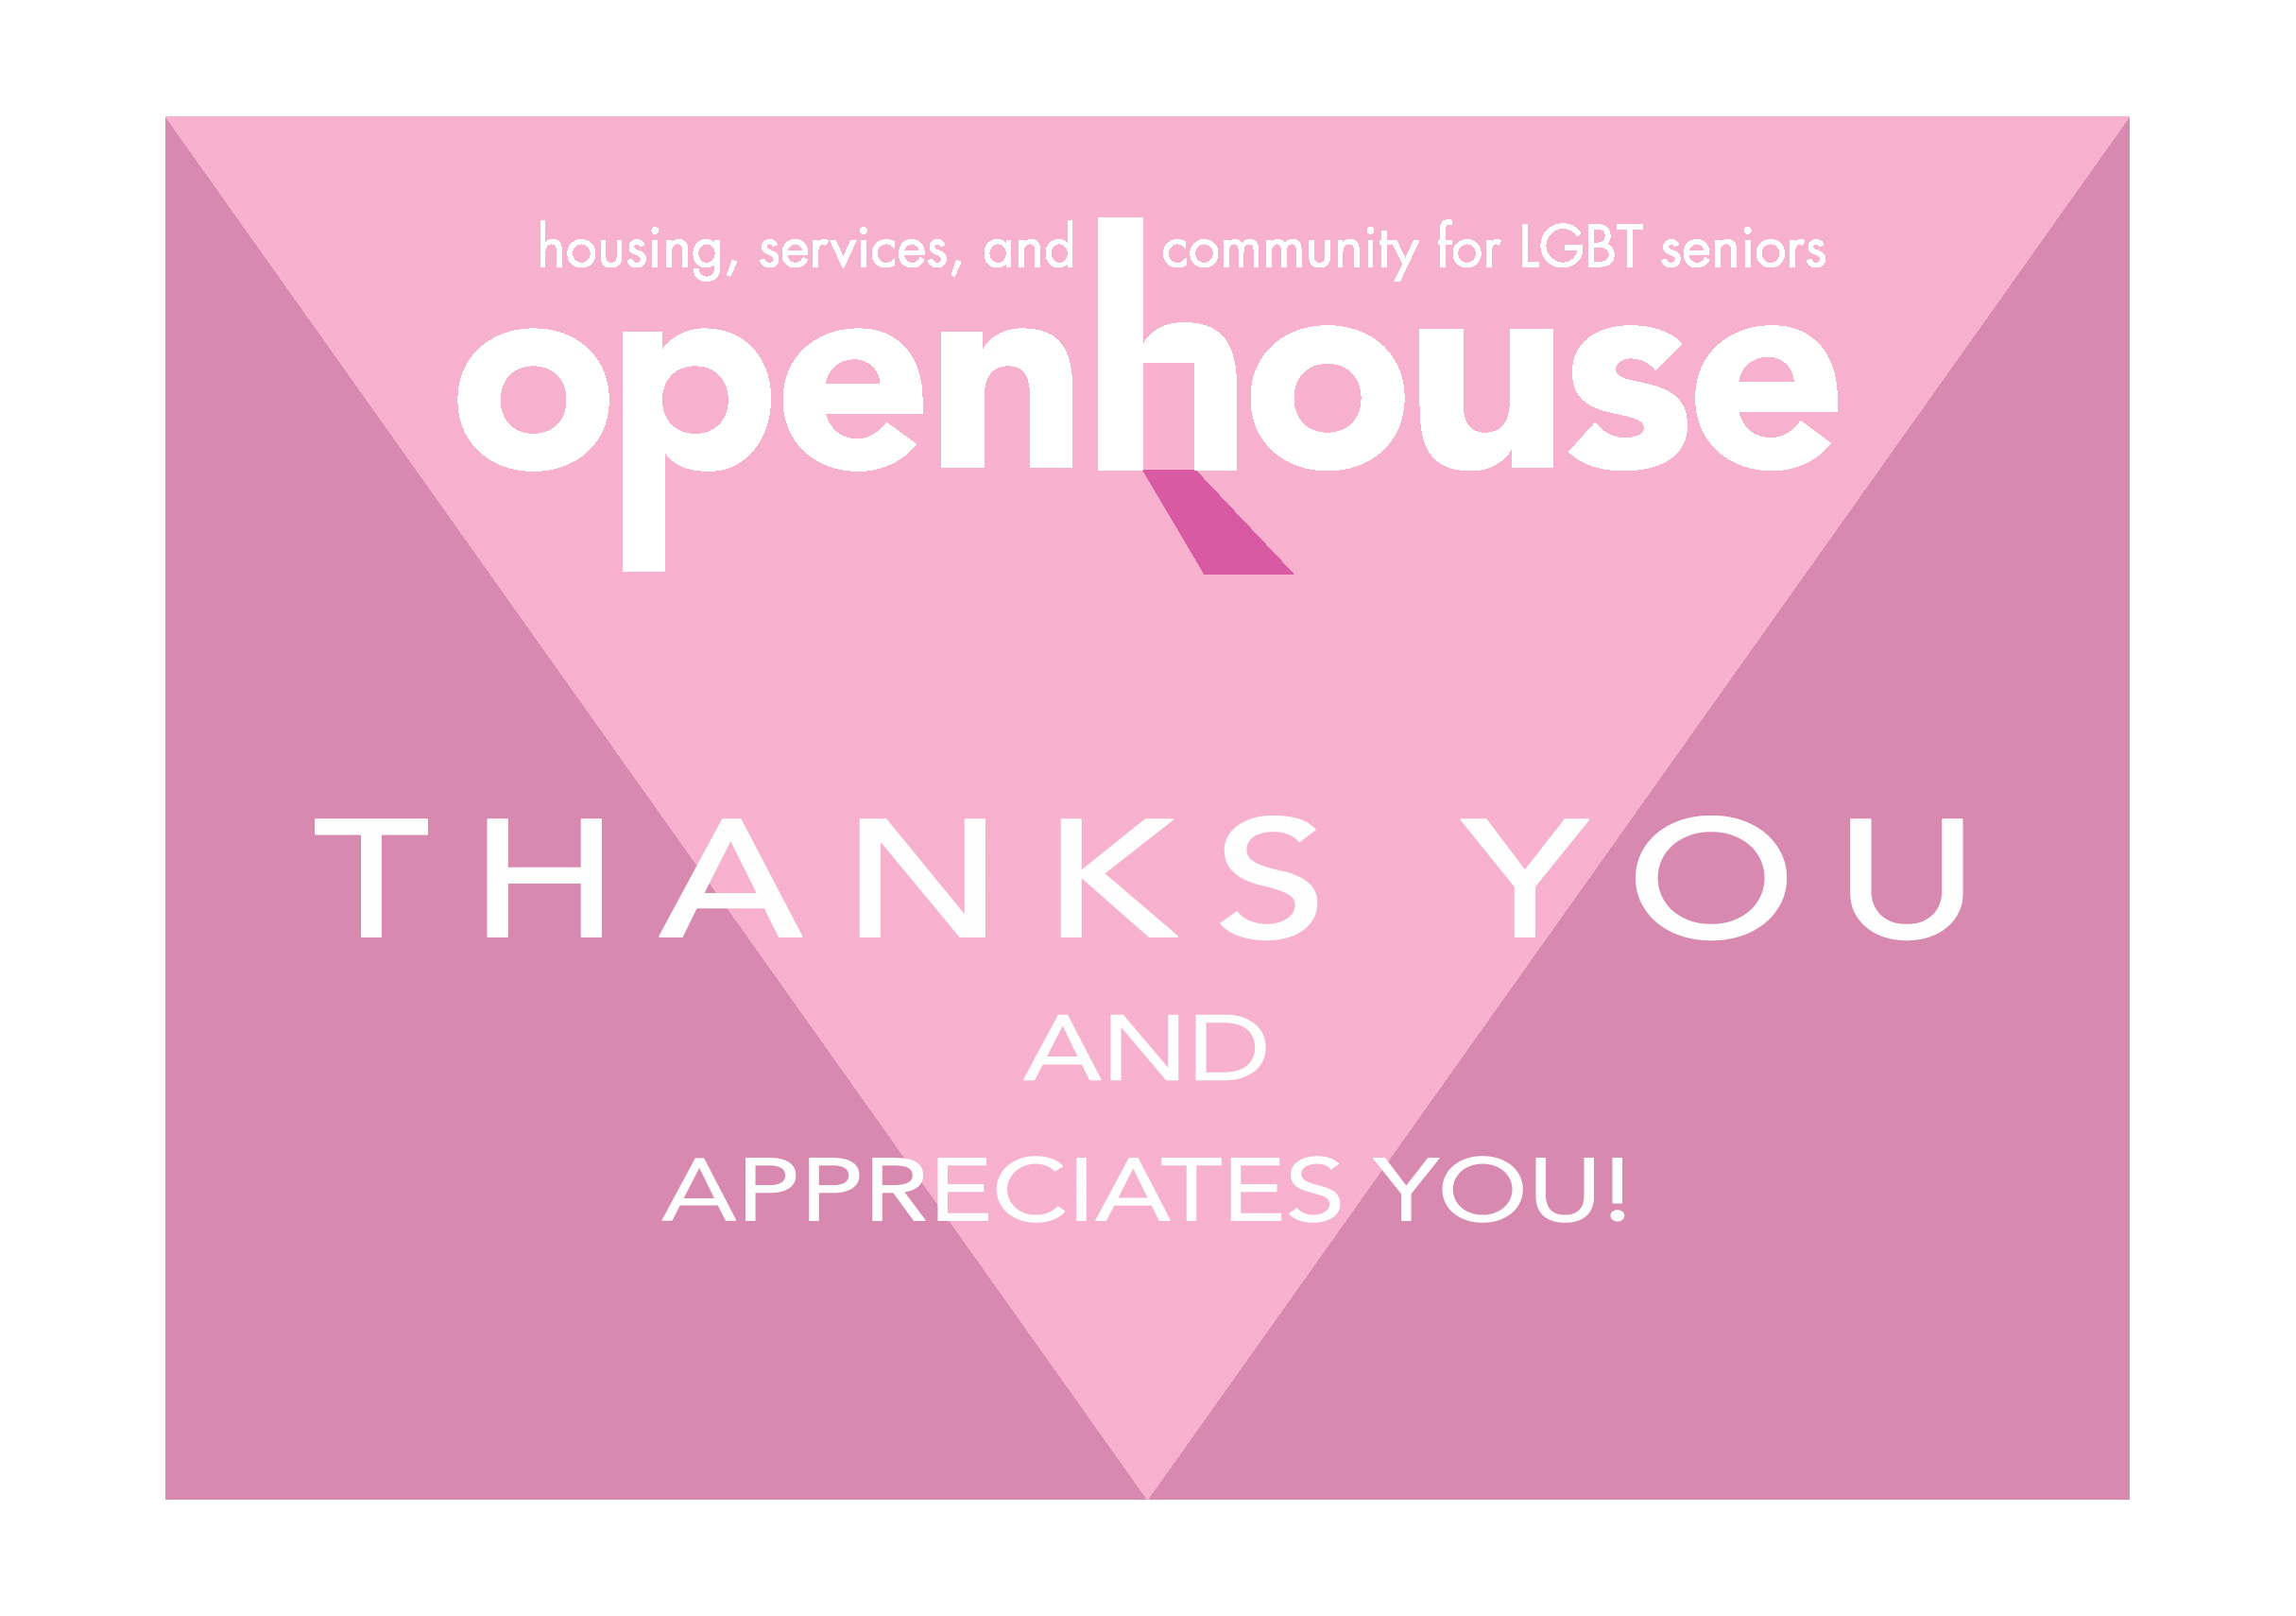 First thank you card template I created for Openhouse.